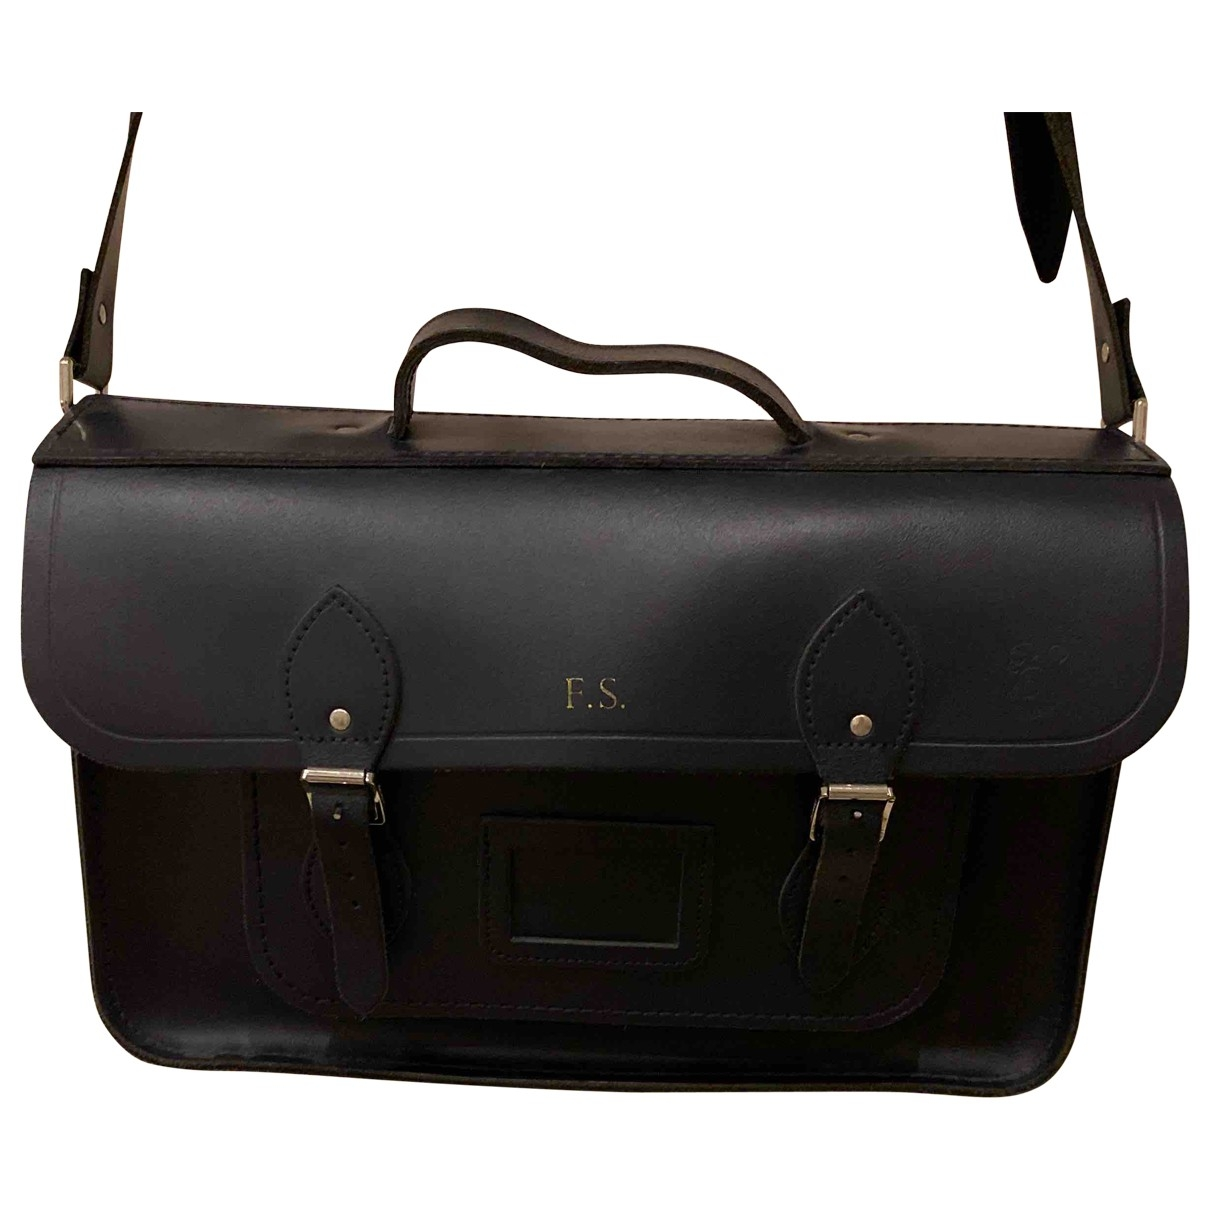 Marroquineria de Cuero Cambridge Satchel Company